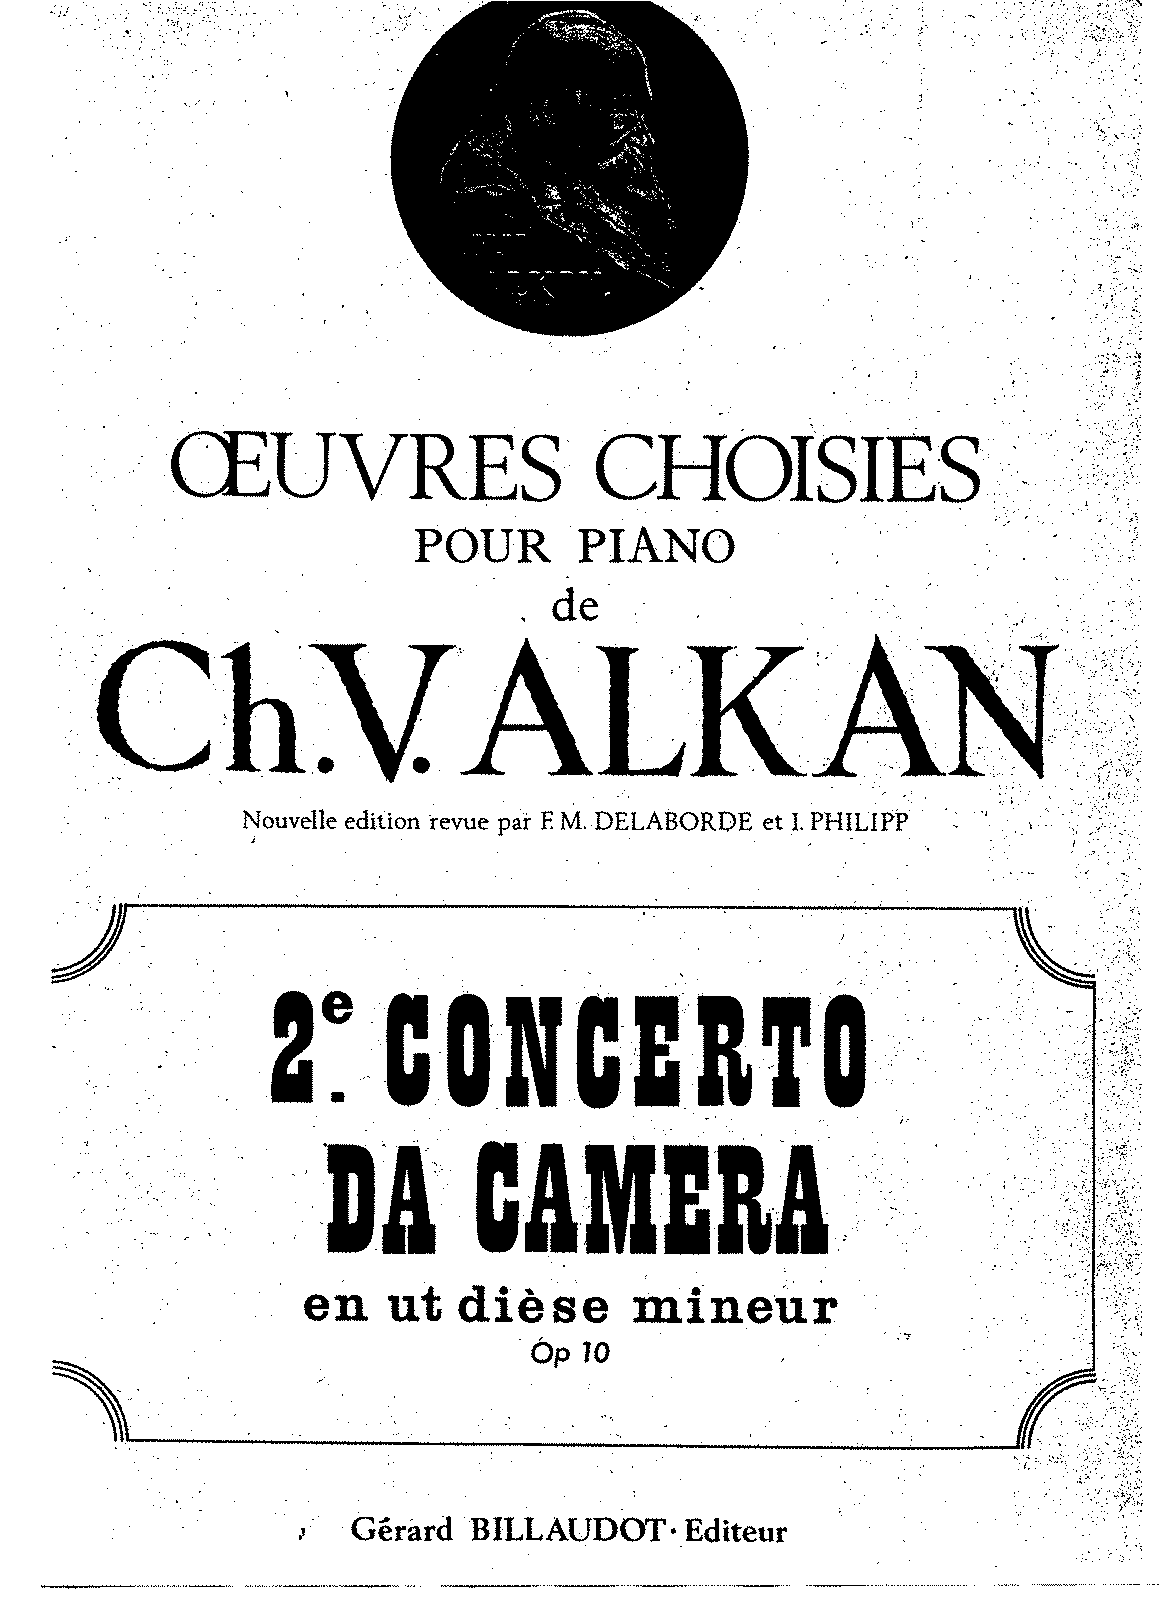 Alkan concerto da camera 2 (fixed).pdf